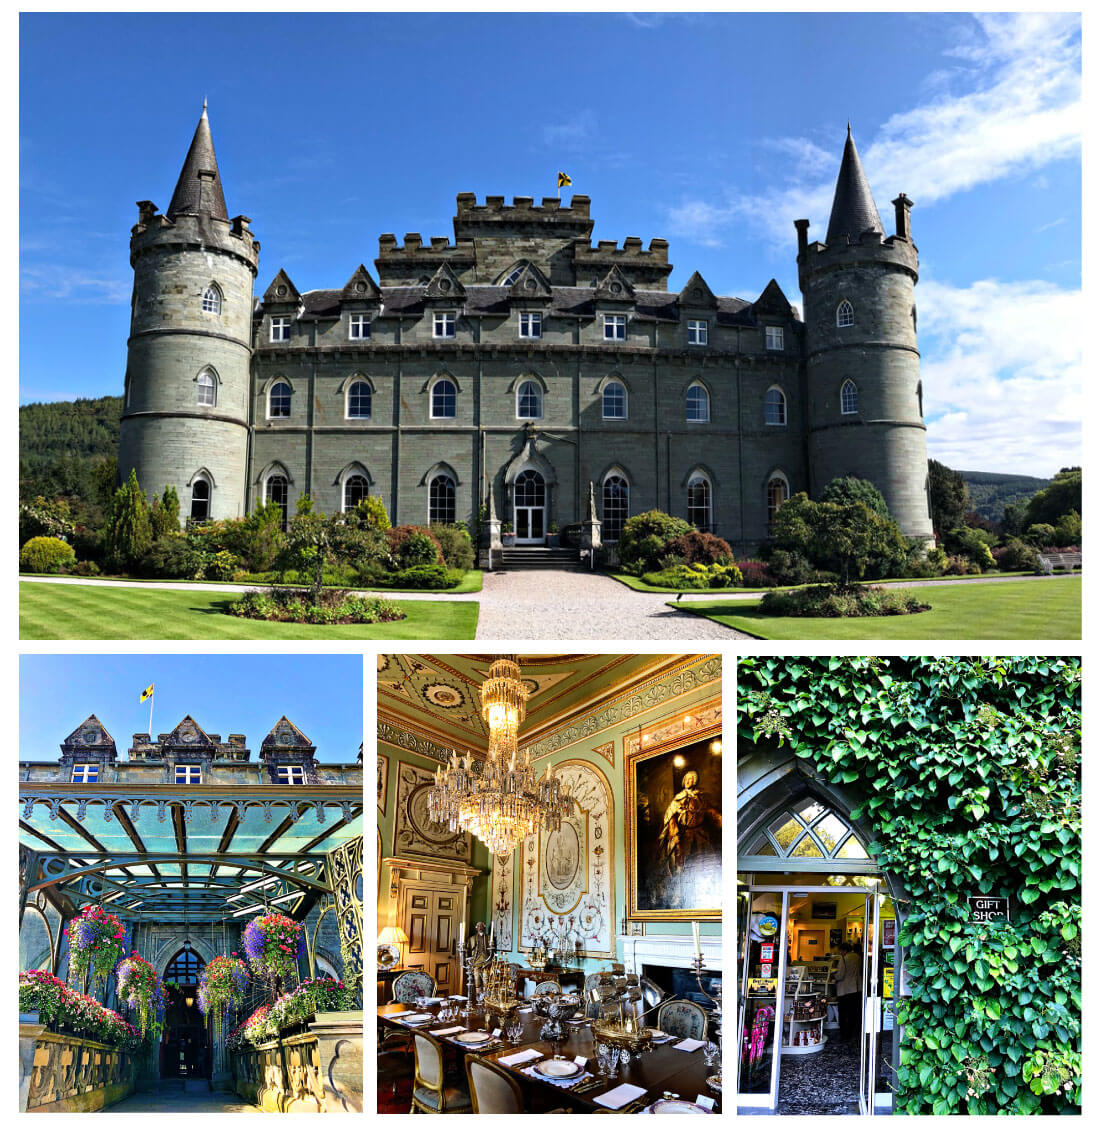 Things to do in Scotland - Inverary Castle